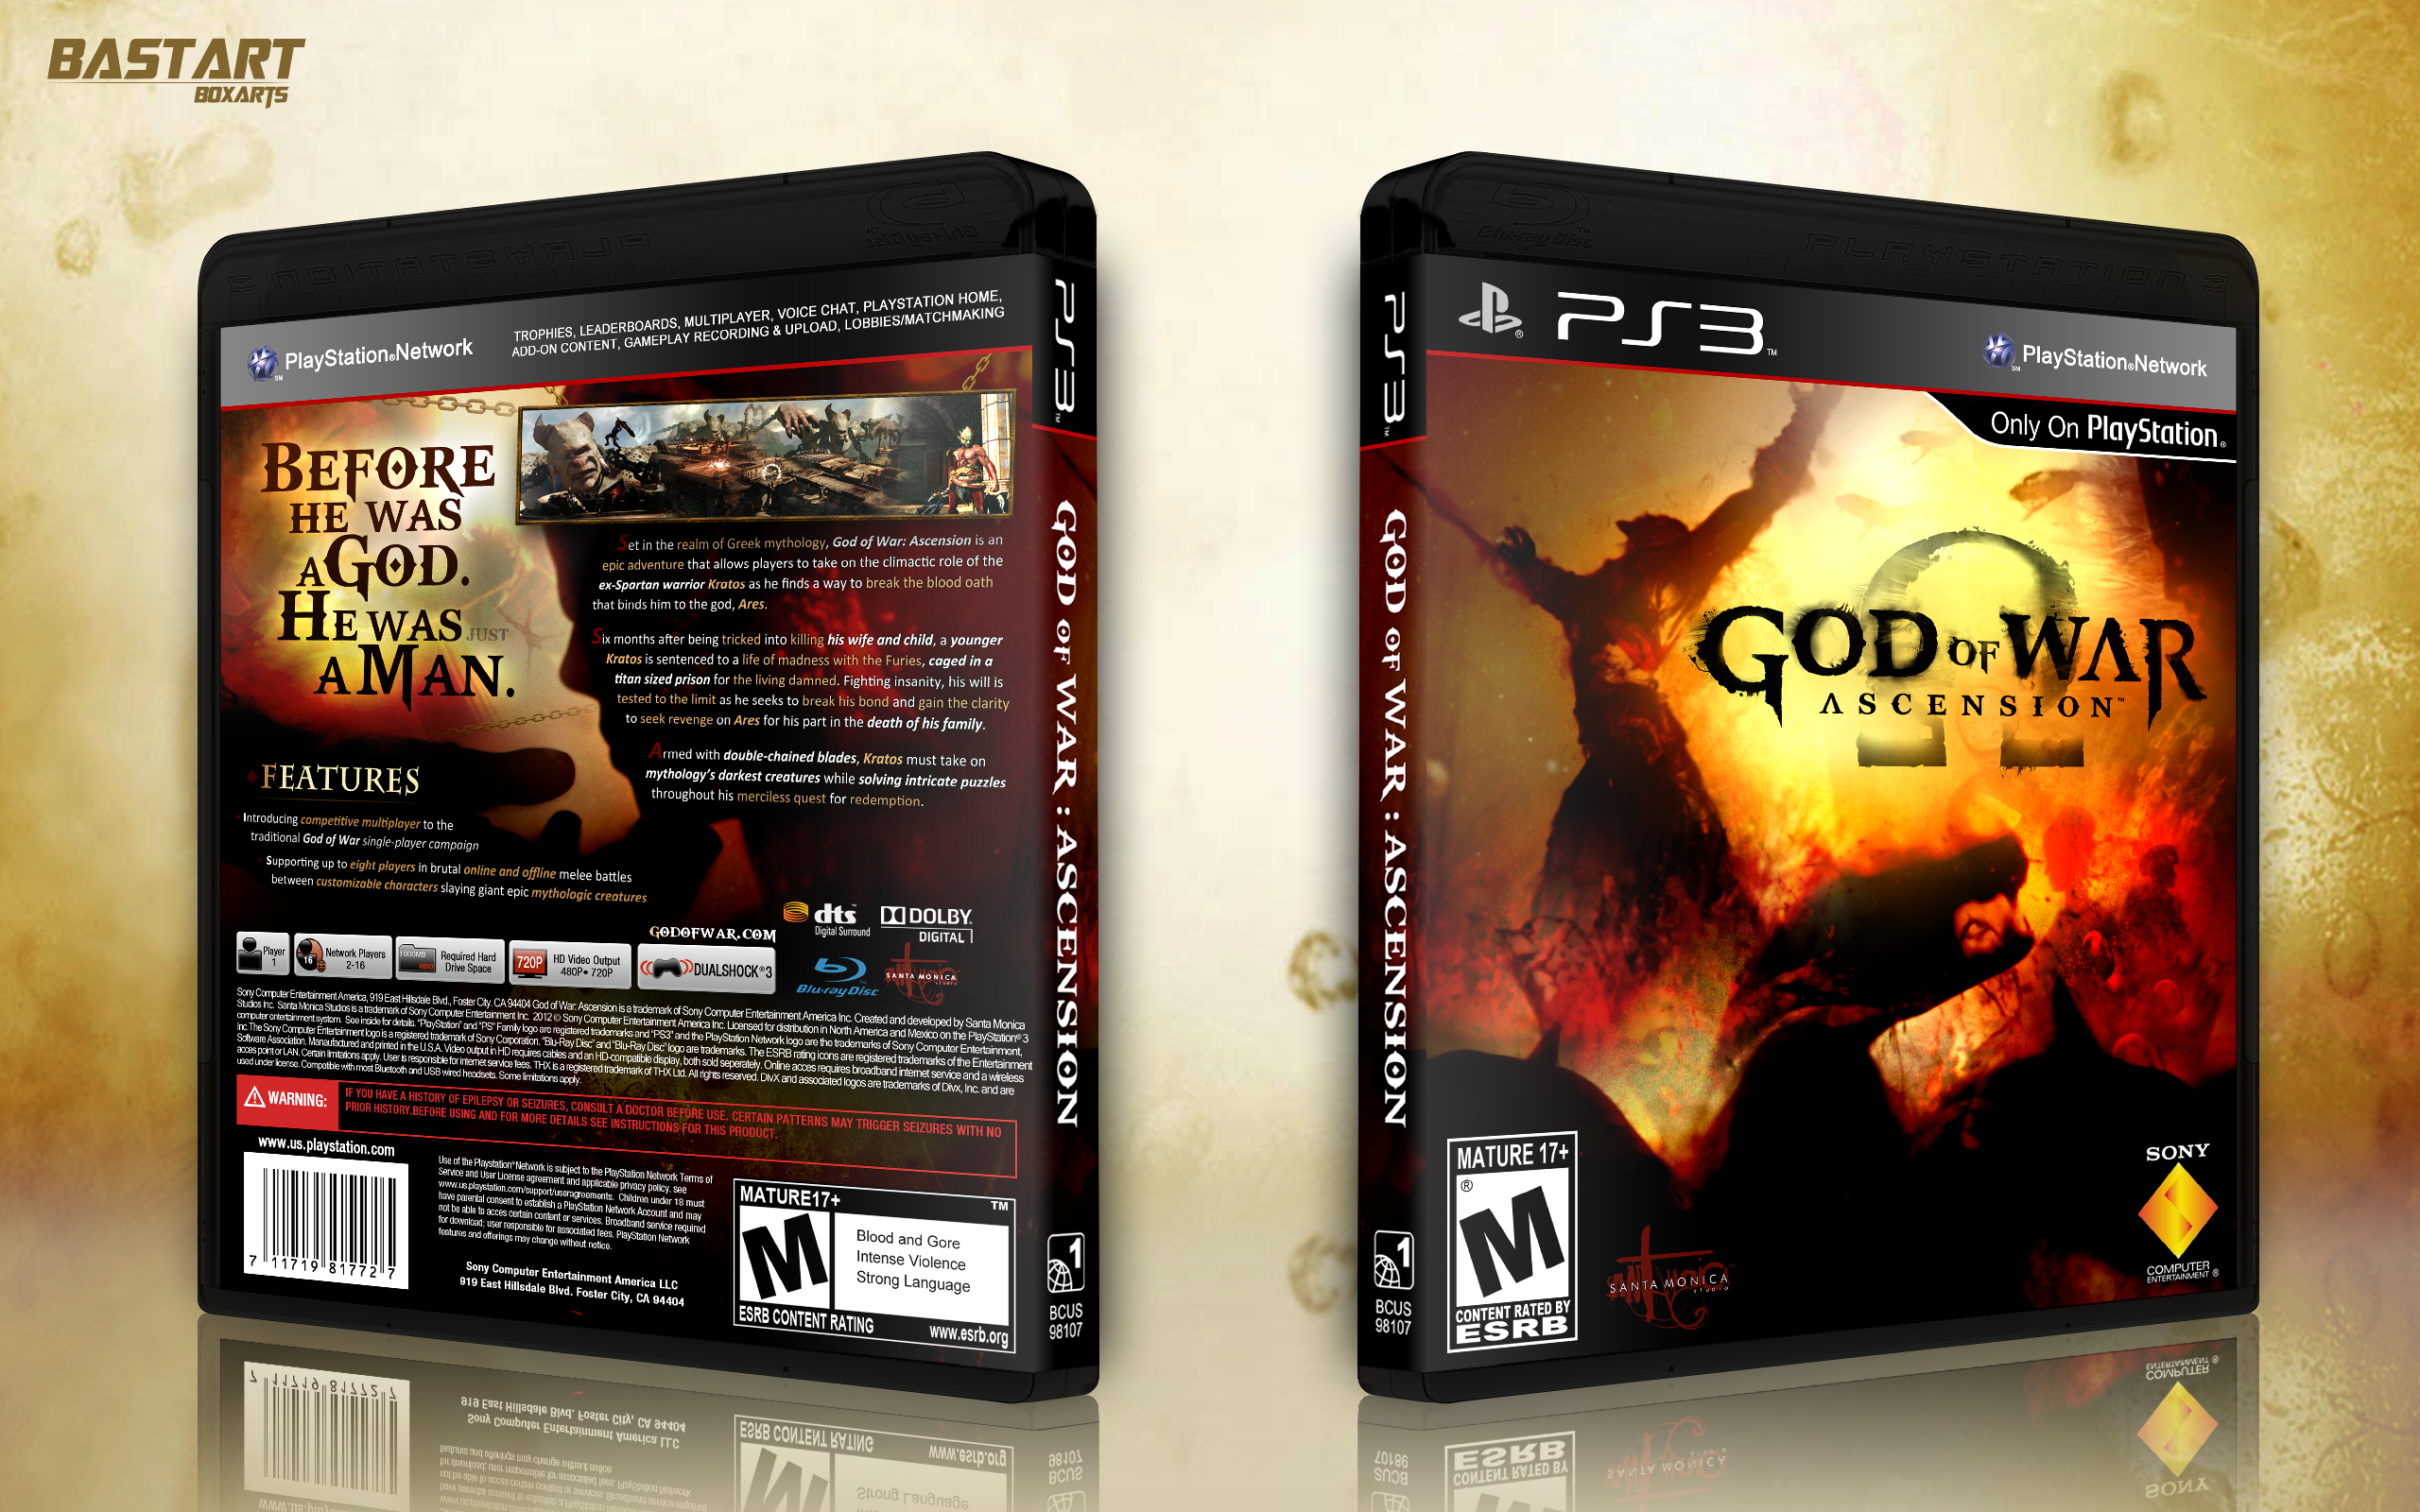 God of War: Ascension box cover